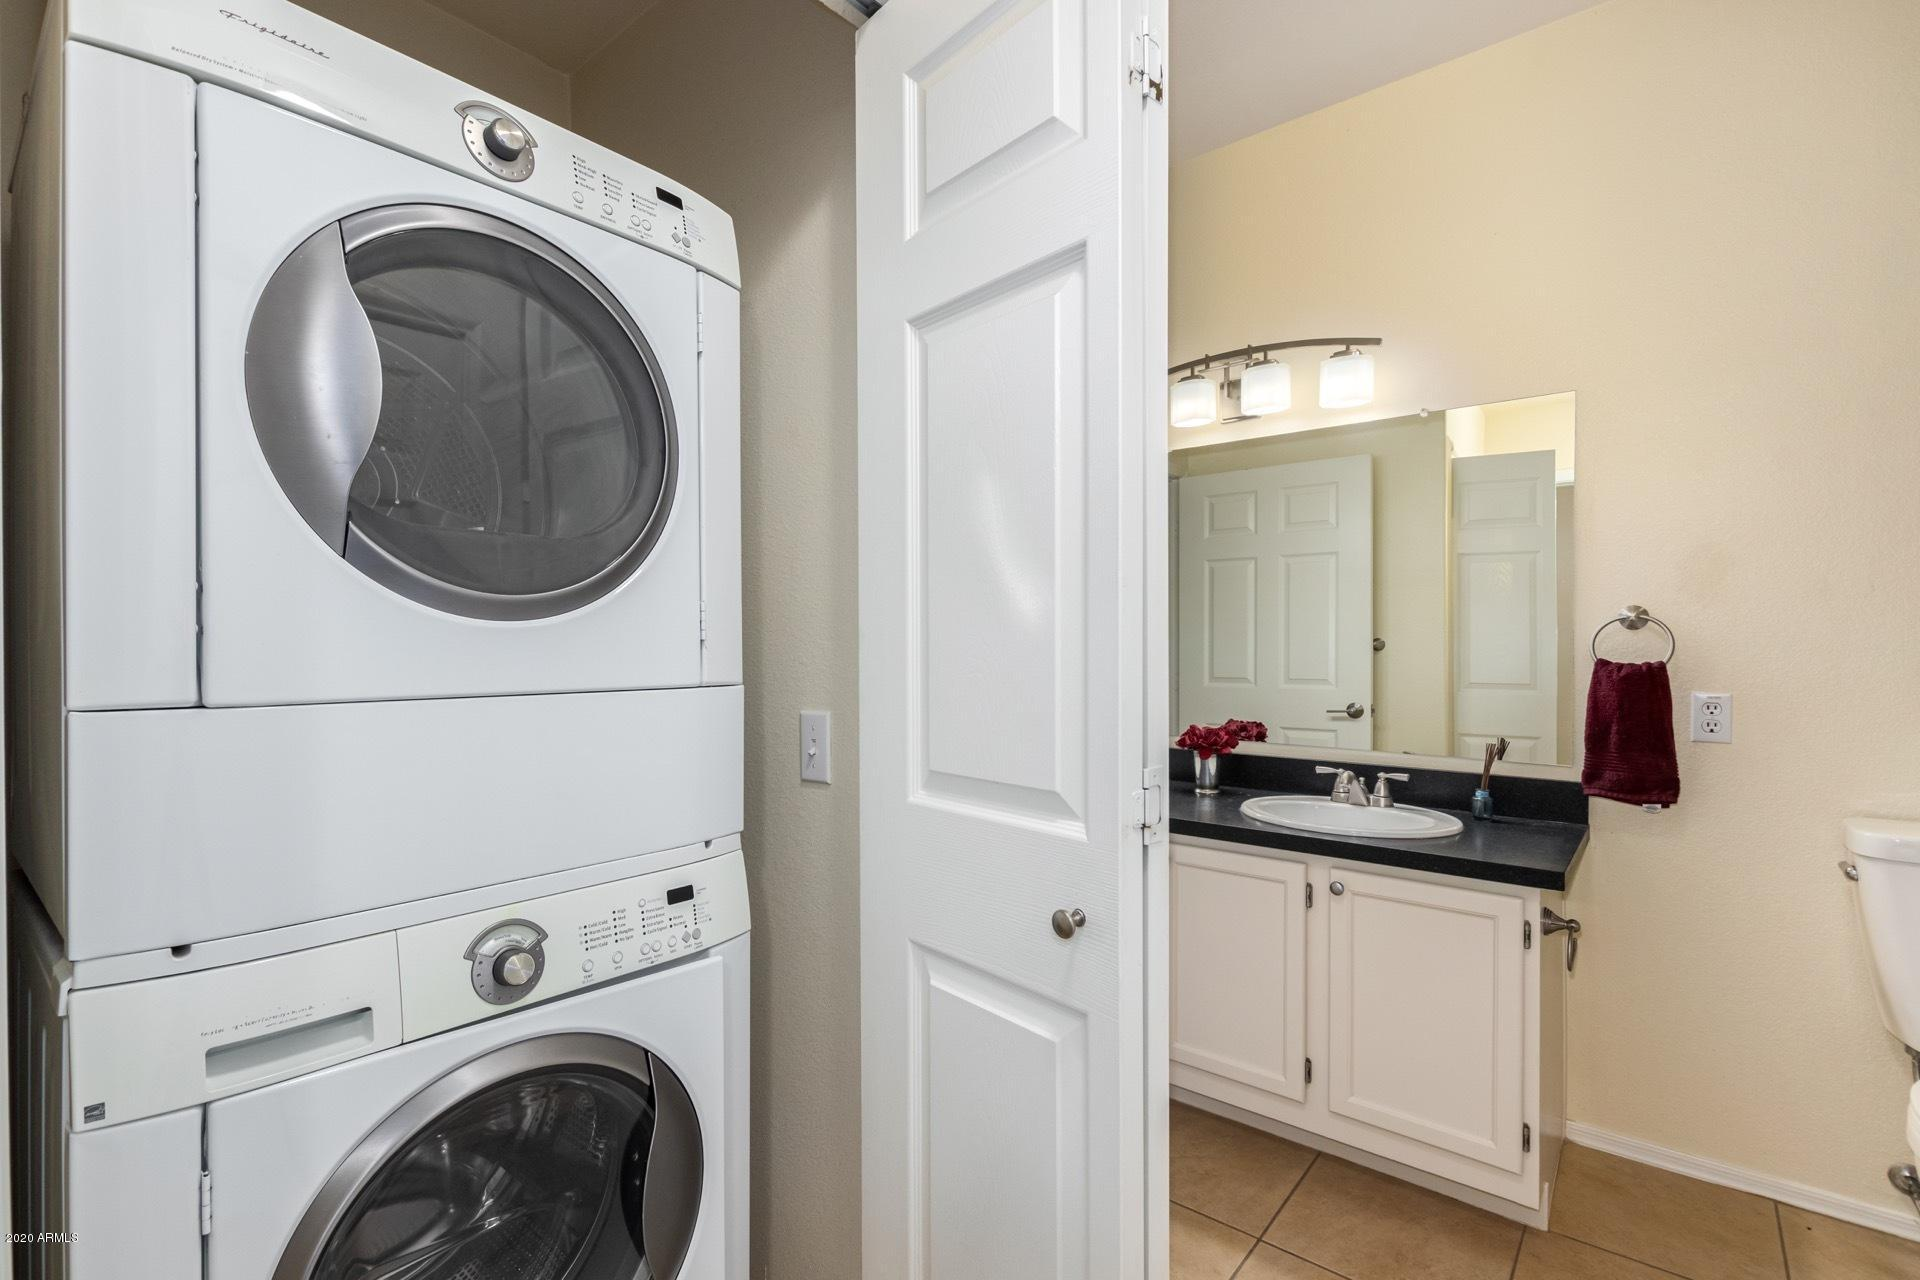 Photo #11: Washer and dryer